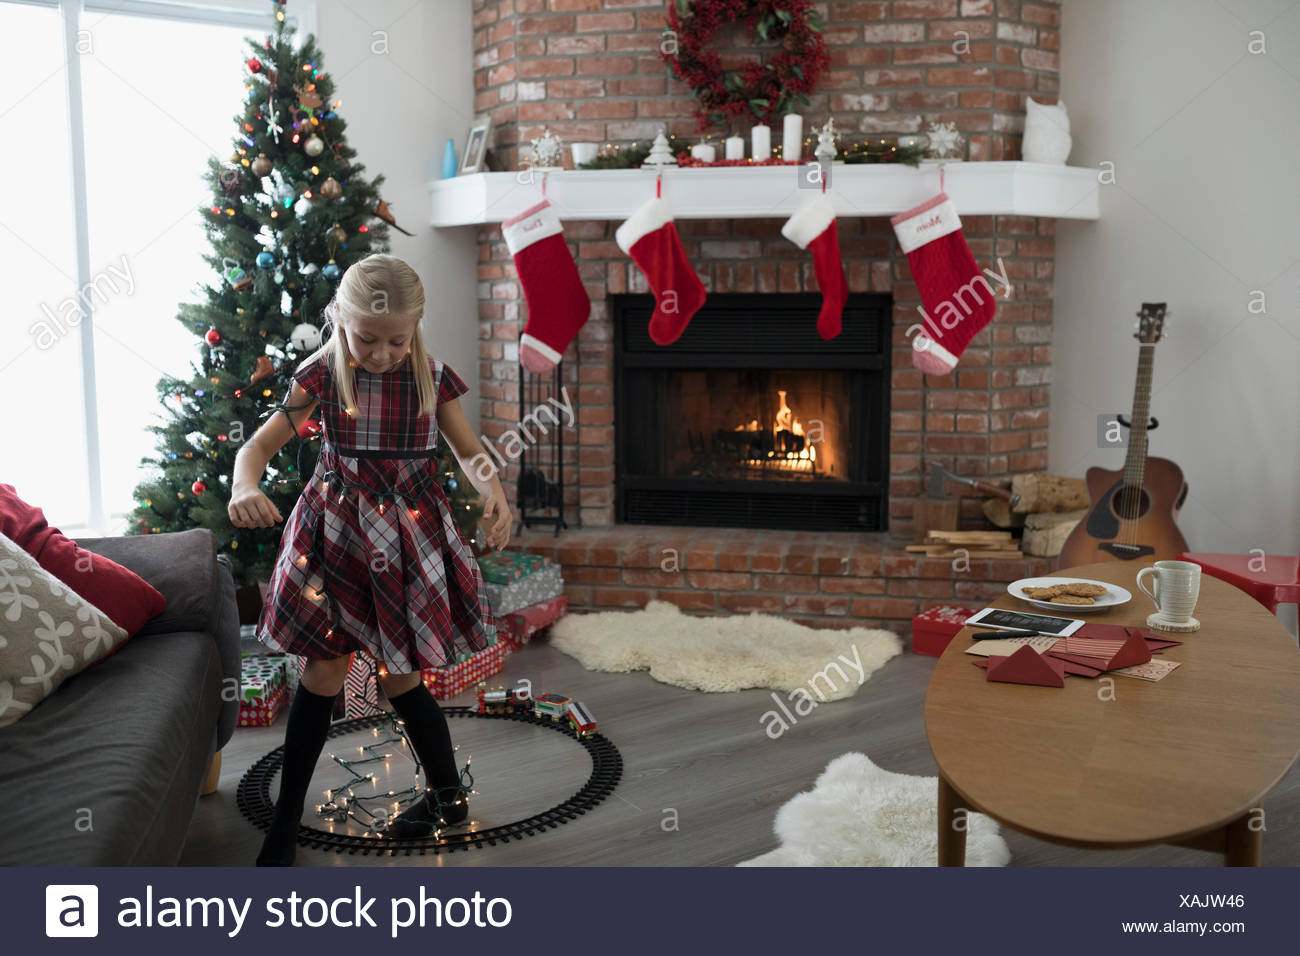 buy popular b2d22 d5afe Girl wrapped in Christmas tree string lights near fireplace ...